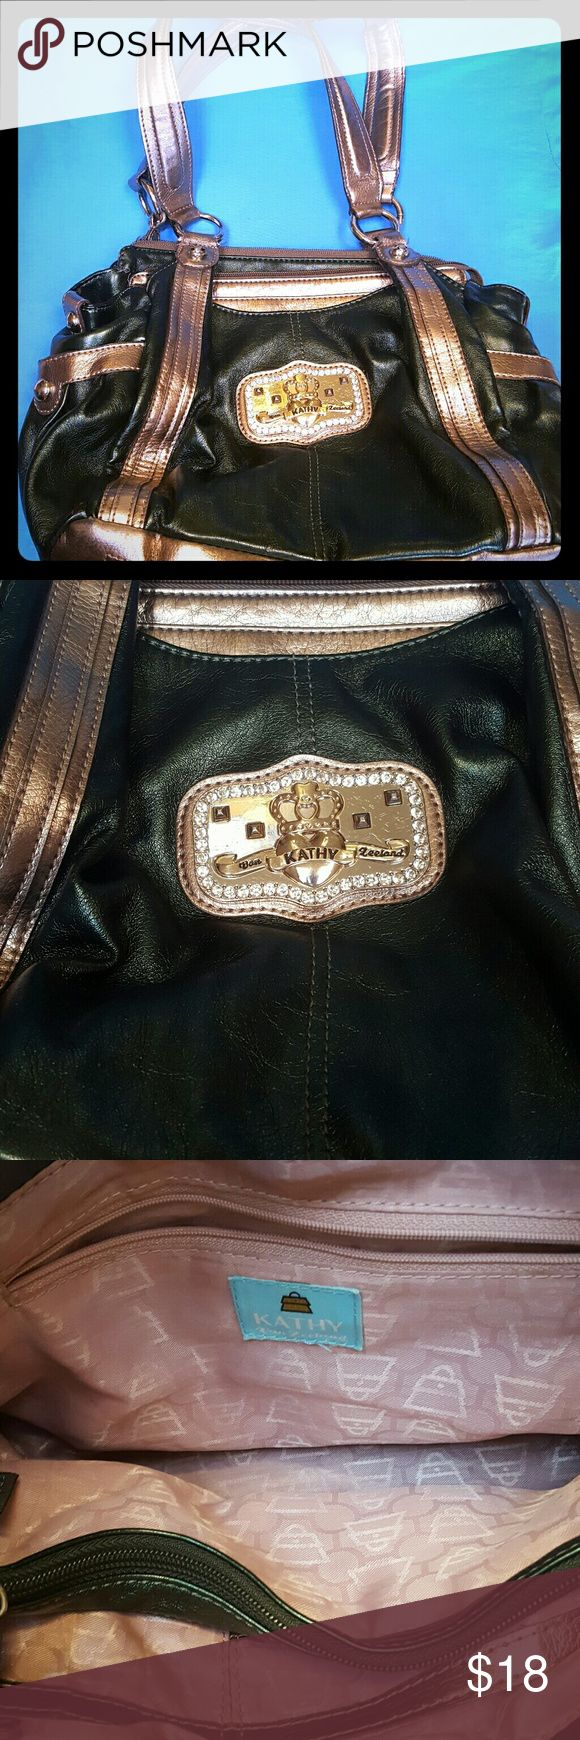 Metallic Green Kathy van Zeeland purse Pre-loved Kathy van Zeeland shoulder bag in great condition! Has multiple sections and pockets. Shows some wear on inside of handles, see picture. The rest of the bag and interior look great! Have had it in my closet unused for too long so it's looking for a new home! Kathy Van Zeeland Bags Shoulder Bags